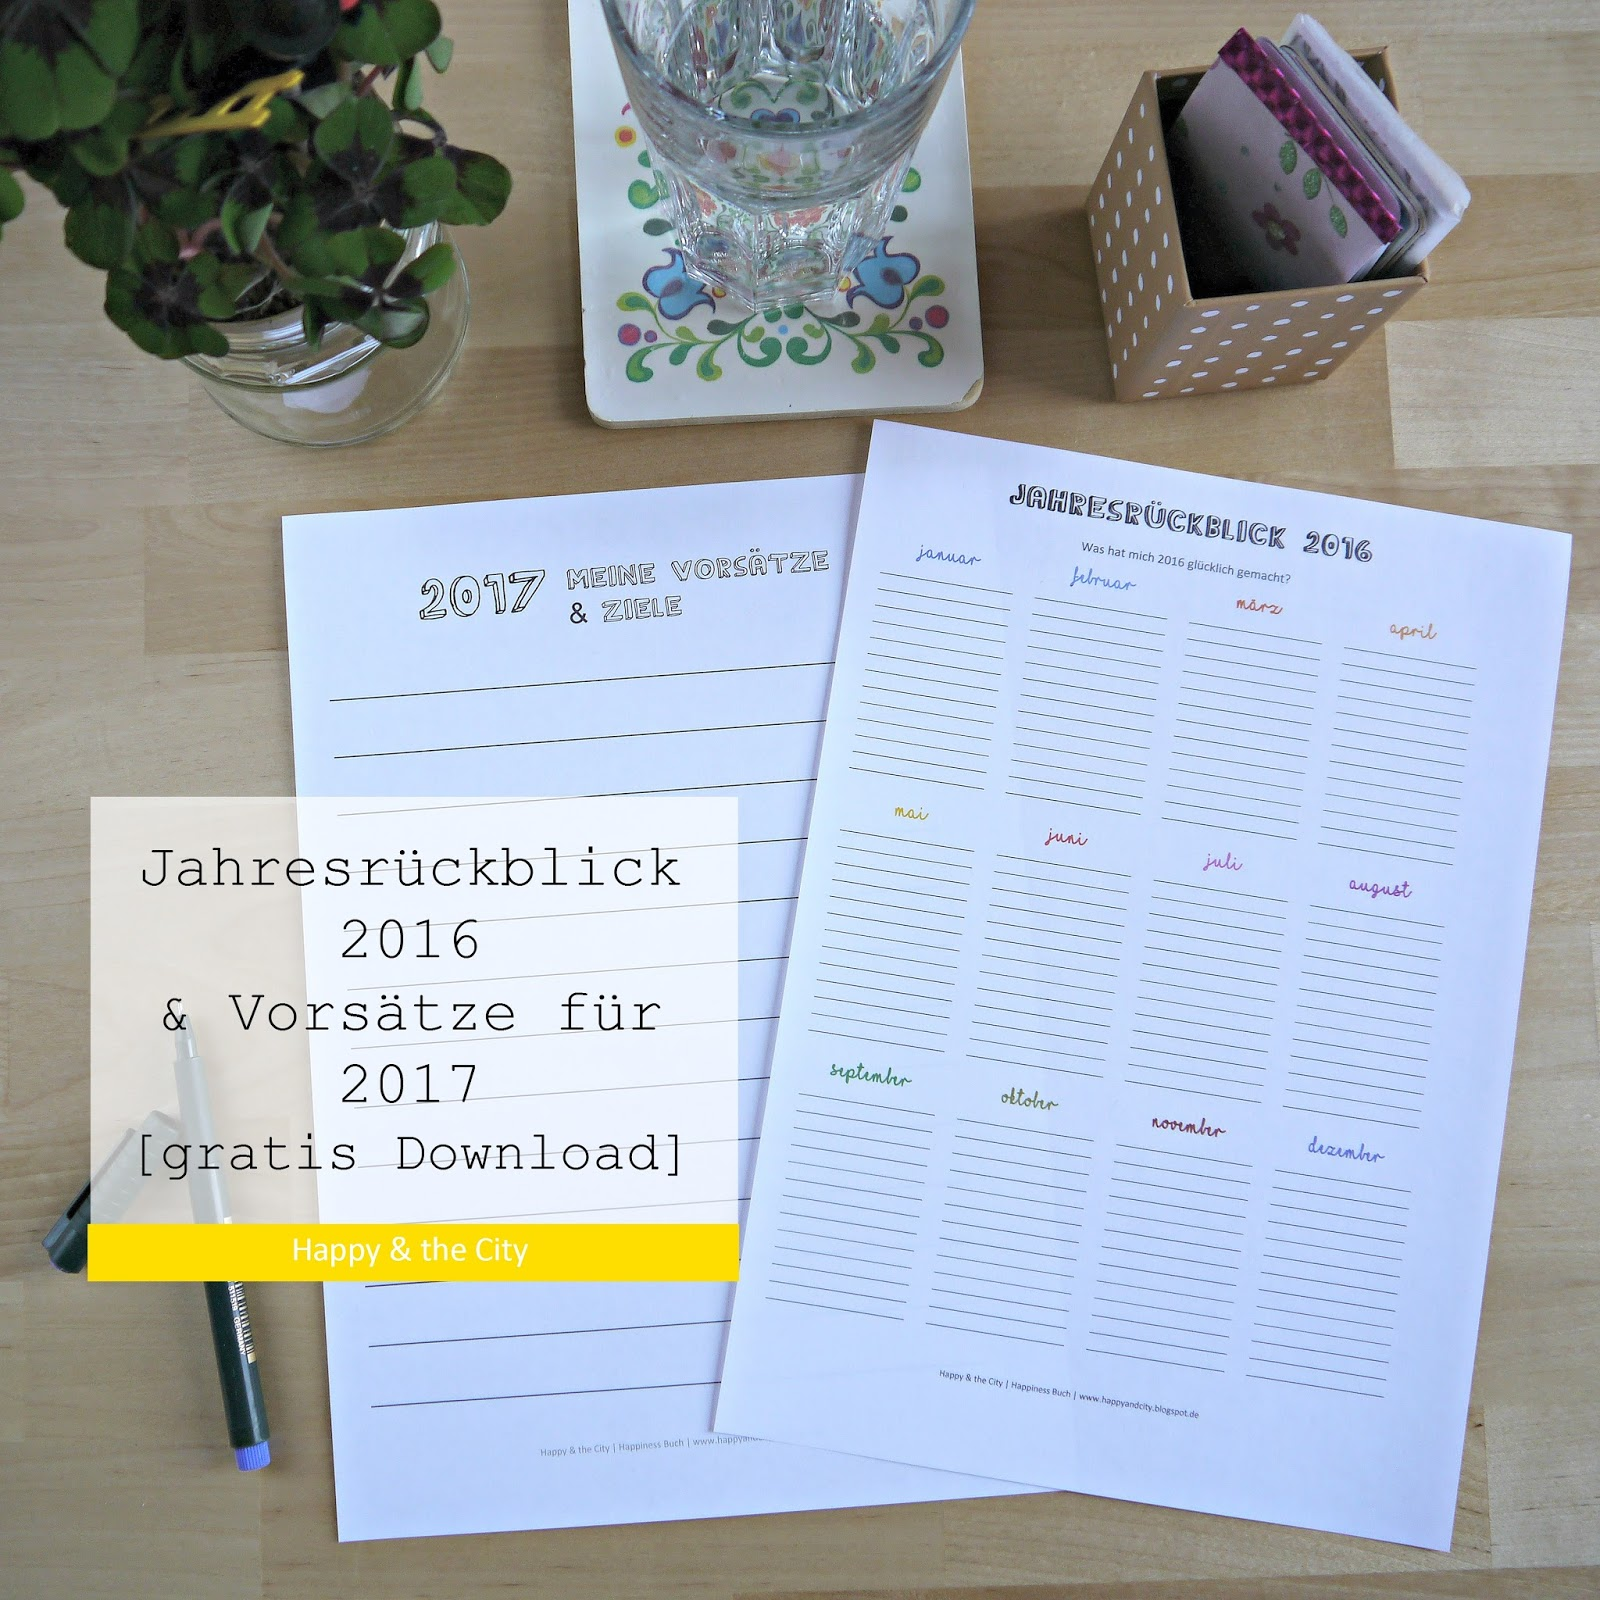 Beste Vorlage Blogspot Galerie - Entry Level Resume Vorlagen ...